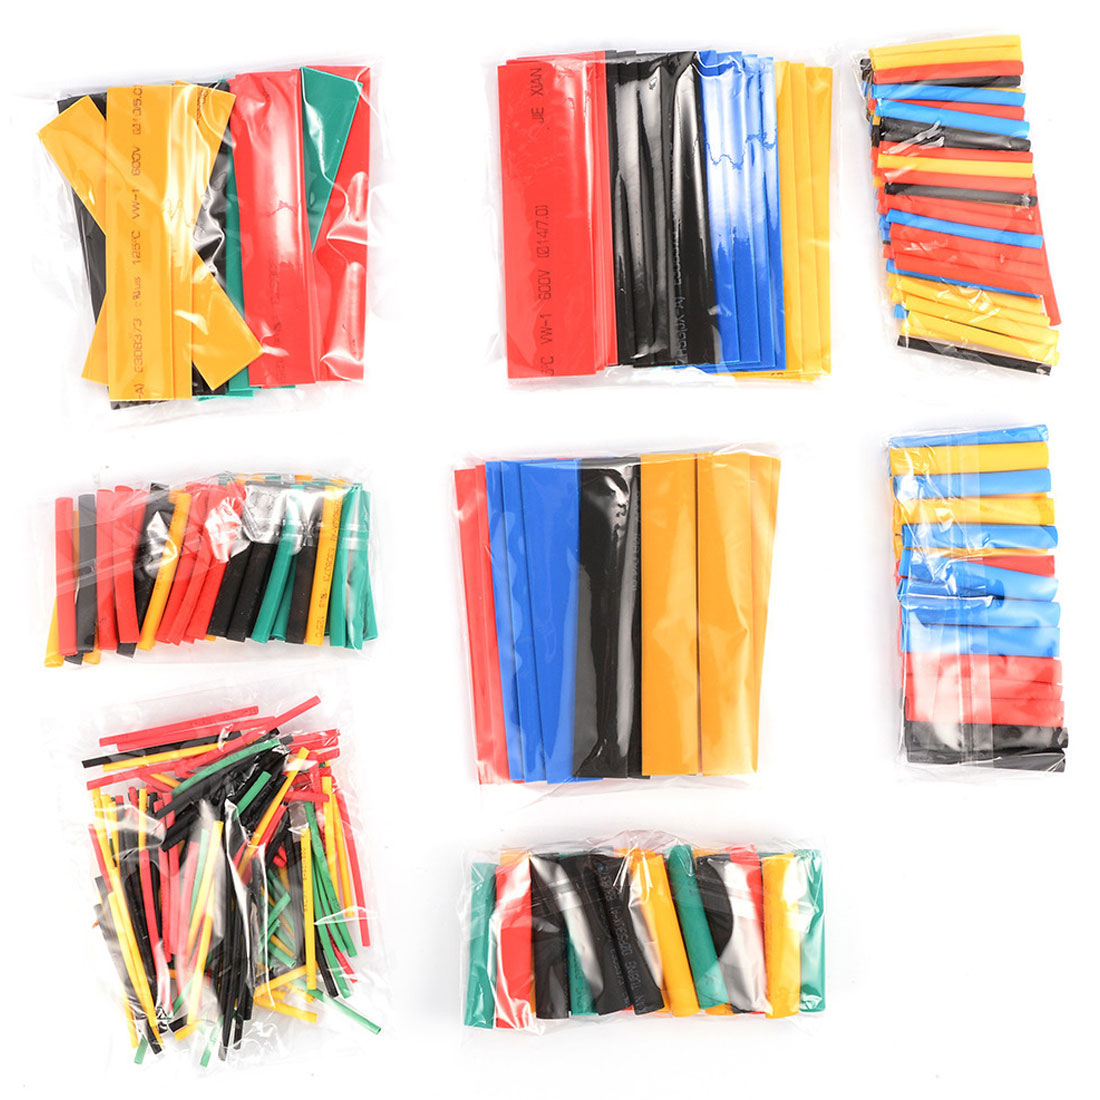 2:1 Halogen-Free Heat Shrink Tubing Tube 328Pcs 8 Sizes Multi Color Polyolefin Assortment Sleeving Wrap Tubes